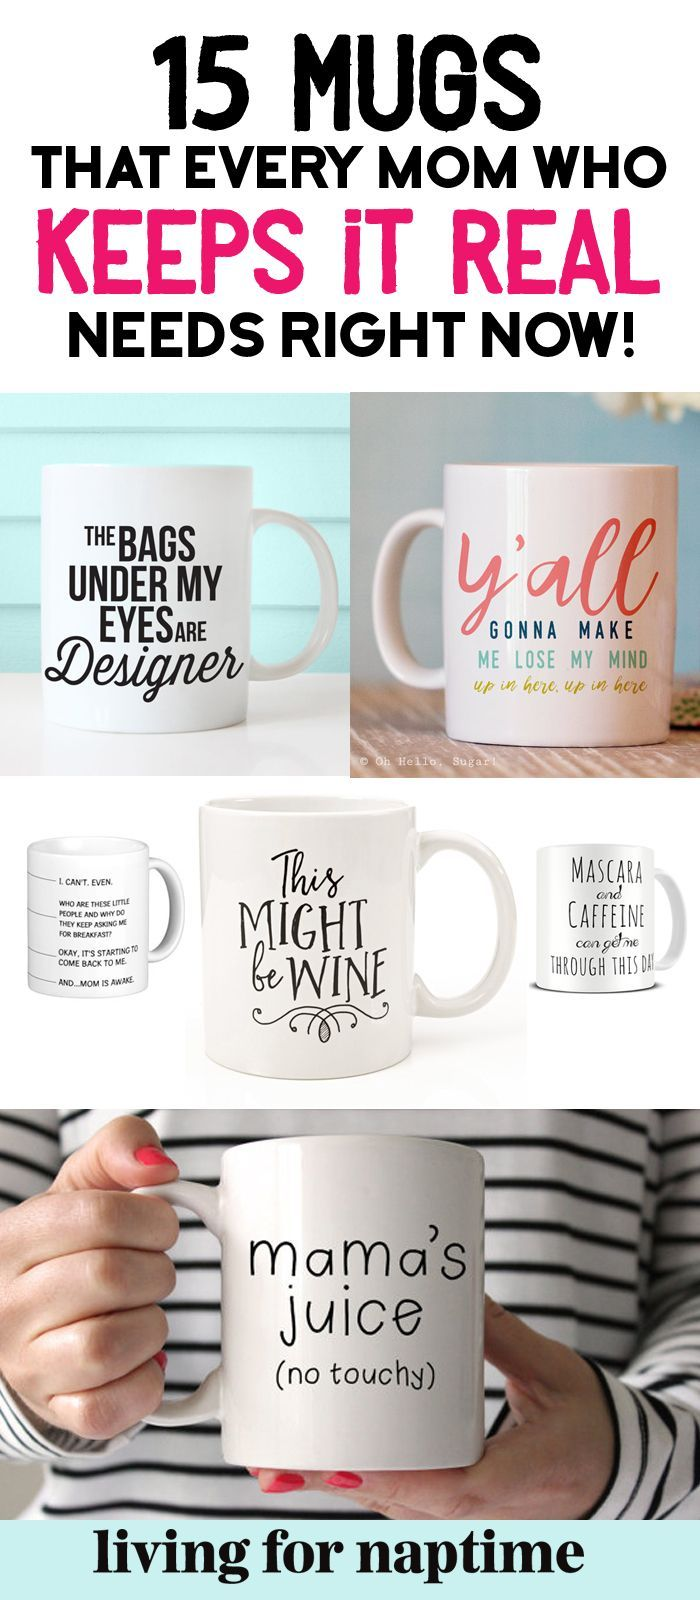 Coffee cup you can smoke out of - 15 Mugs Every Mom Who Keeps It Real Needs For Her Morning Coffee